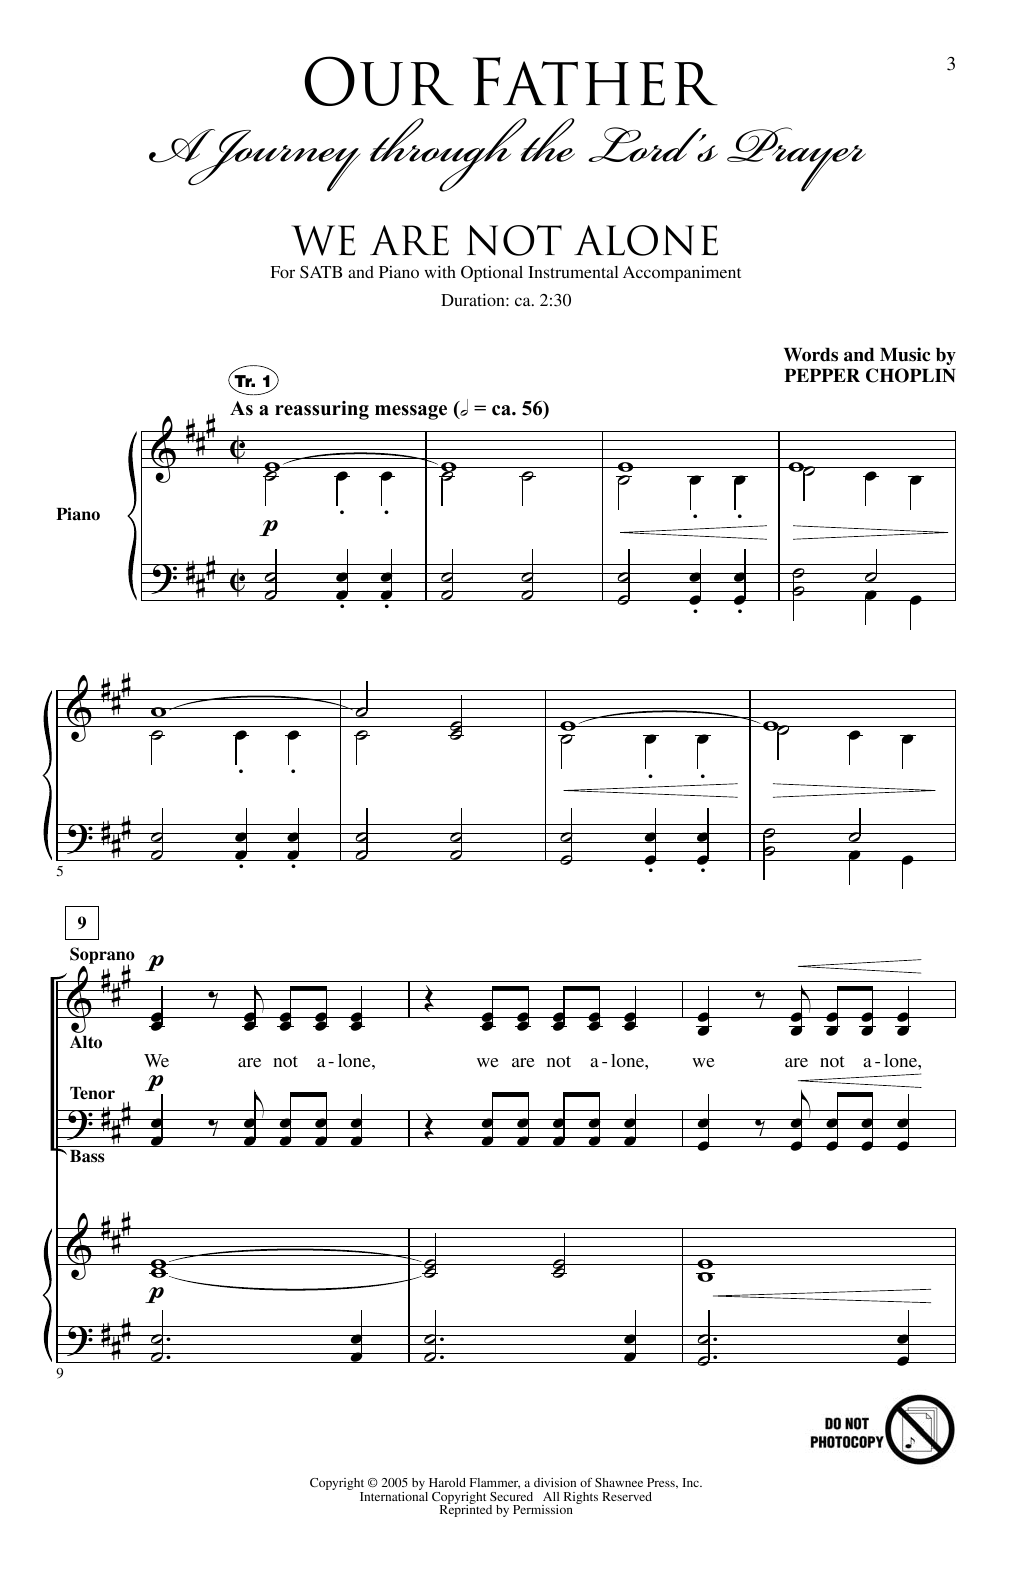 Our Father (A Journey through the Lord's Prayer) (SATB Choir)